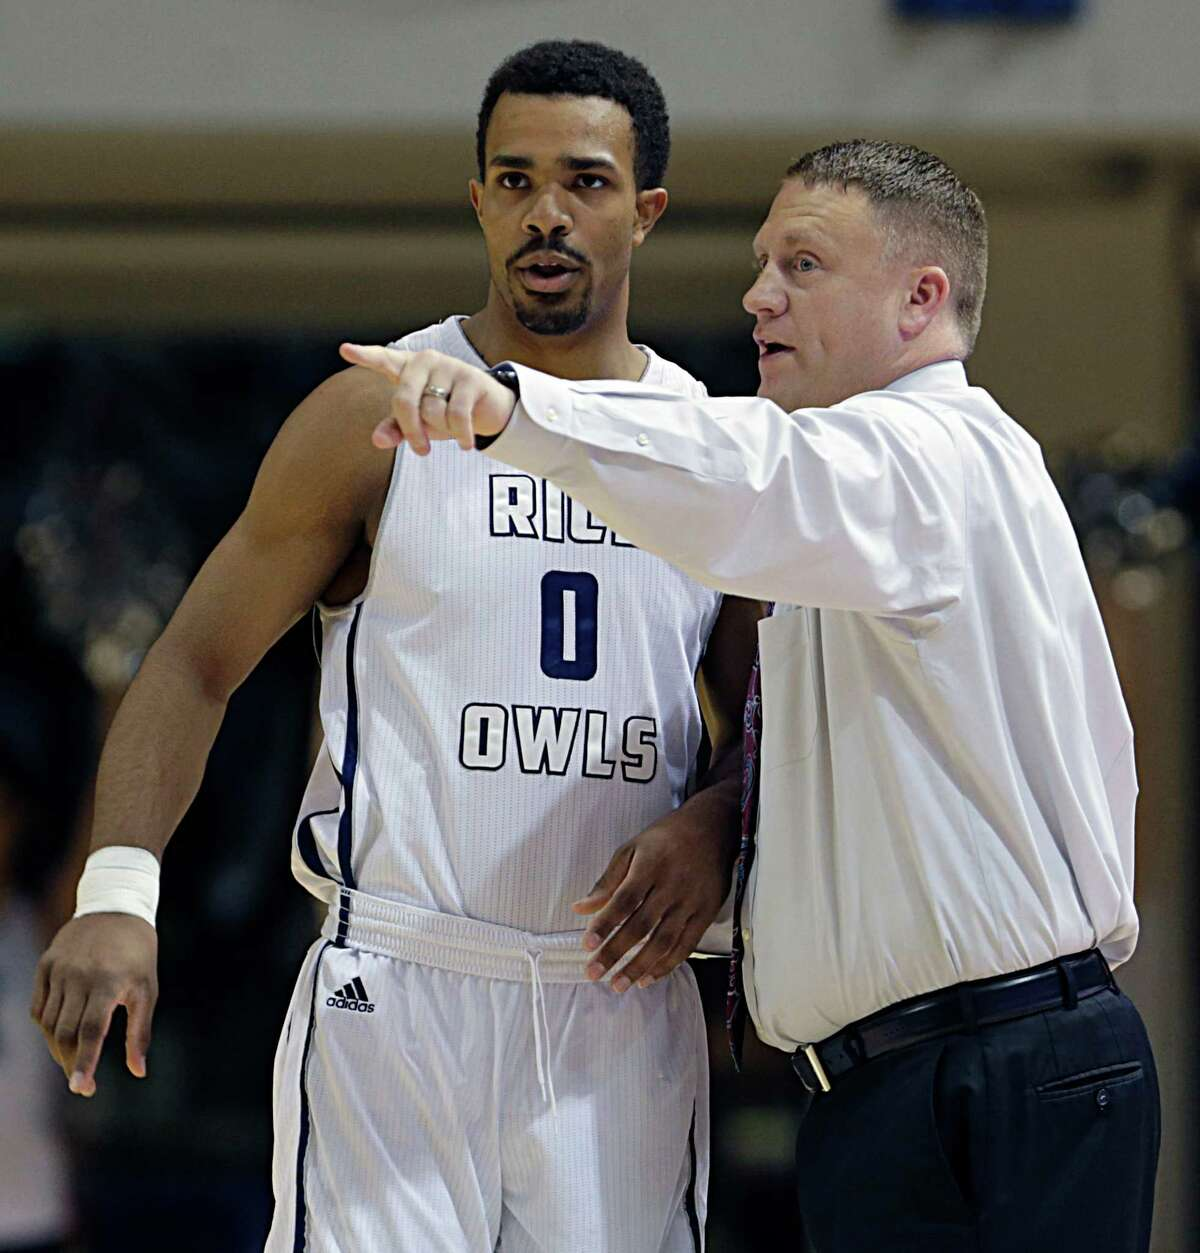 Rice guard Connor Cashaw left, and Rice head coach Mike Rhoades during the first half of men's college basketball game action against Houston Baptist at Tudor Fieldhouse Nov. 30, 2016, in Houston.